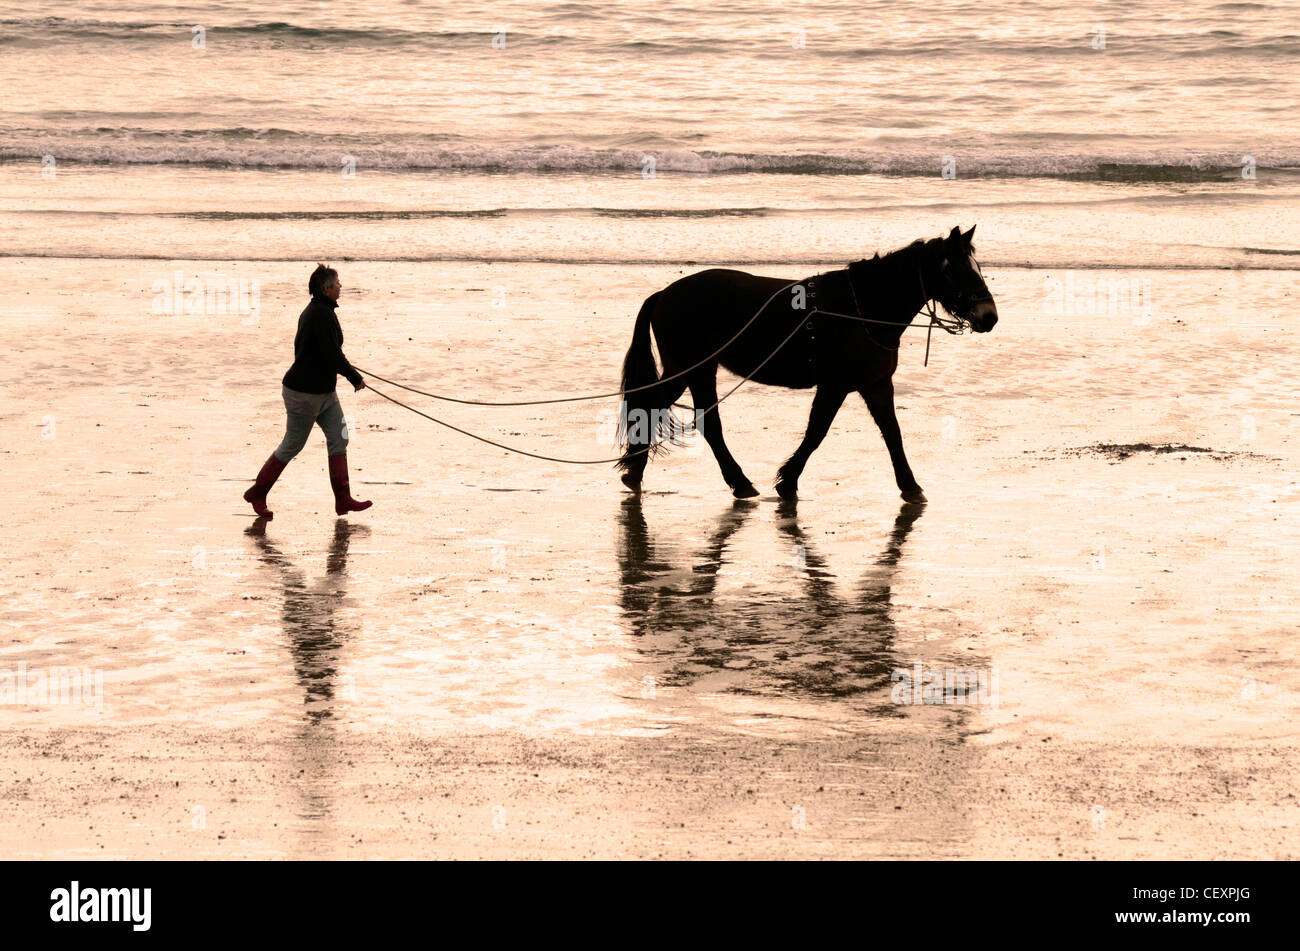 Lady walking horse on long reins by seashore - Stock Image